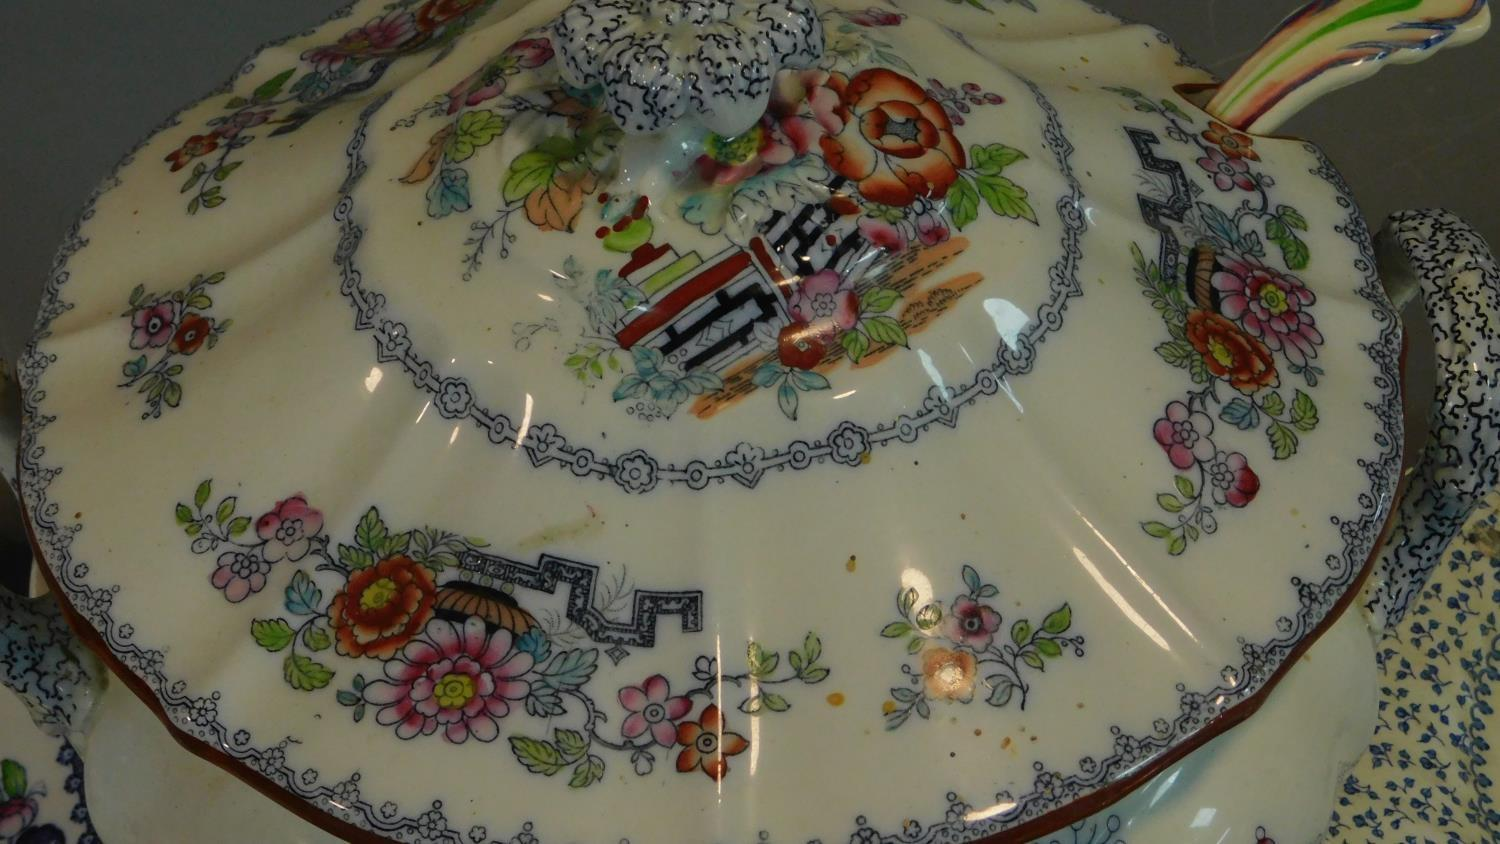 A 19th century Staffordshire ironstone tureen and cover (associated ladle) and various other - Image 10 of 18